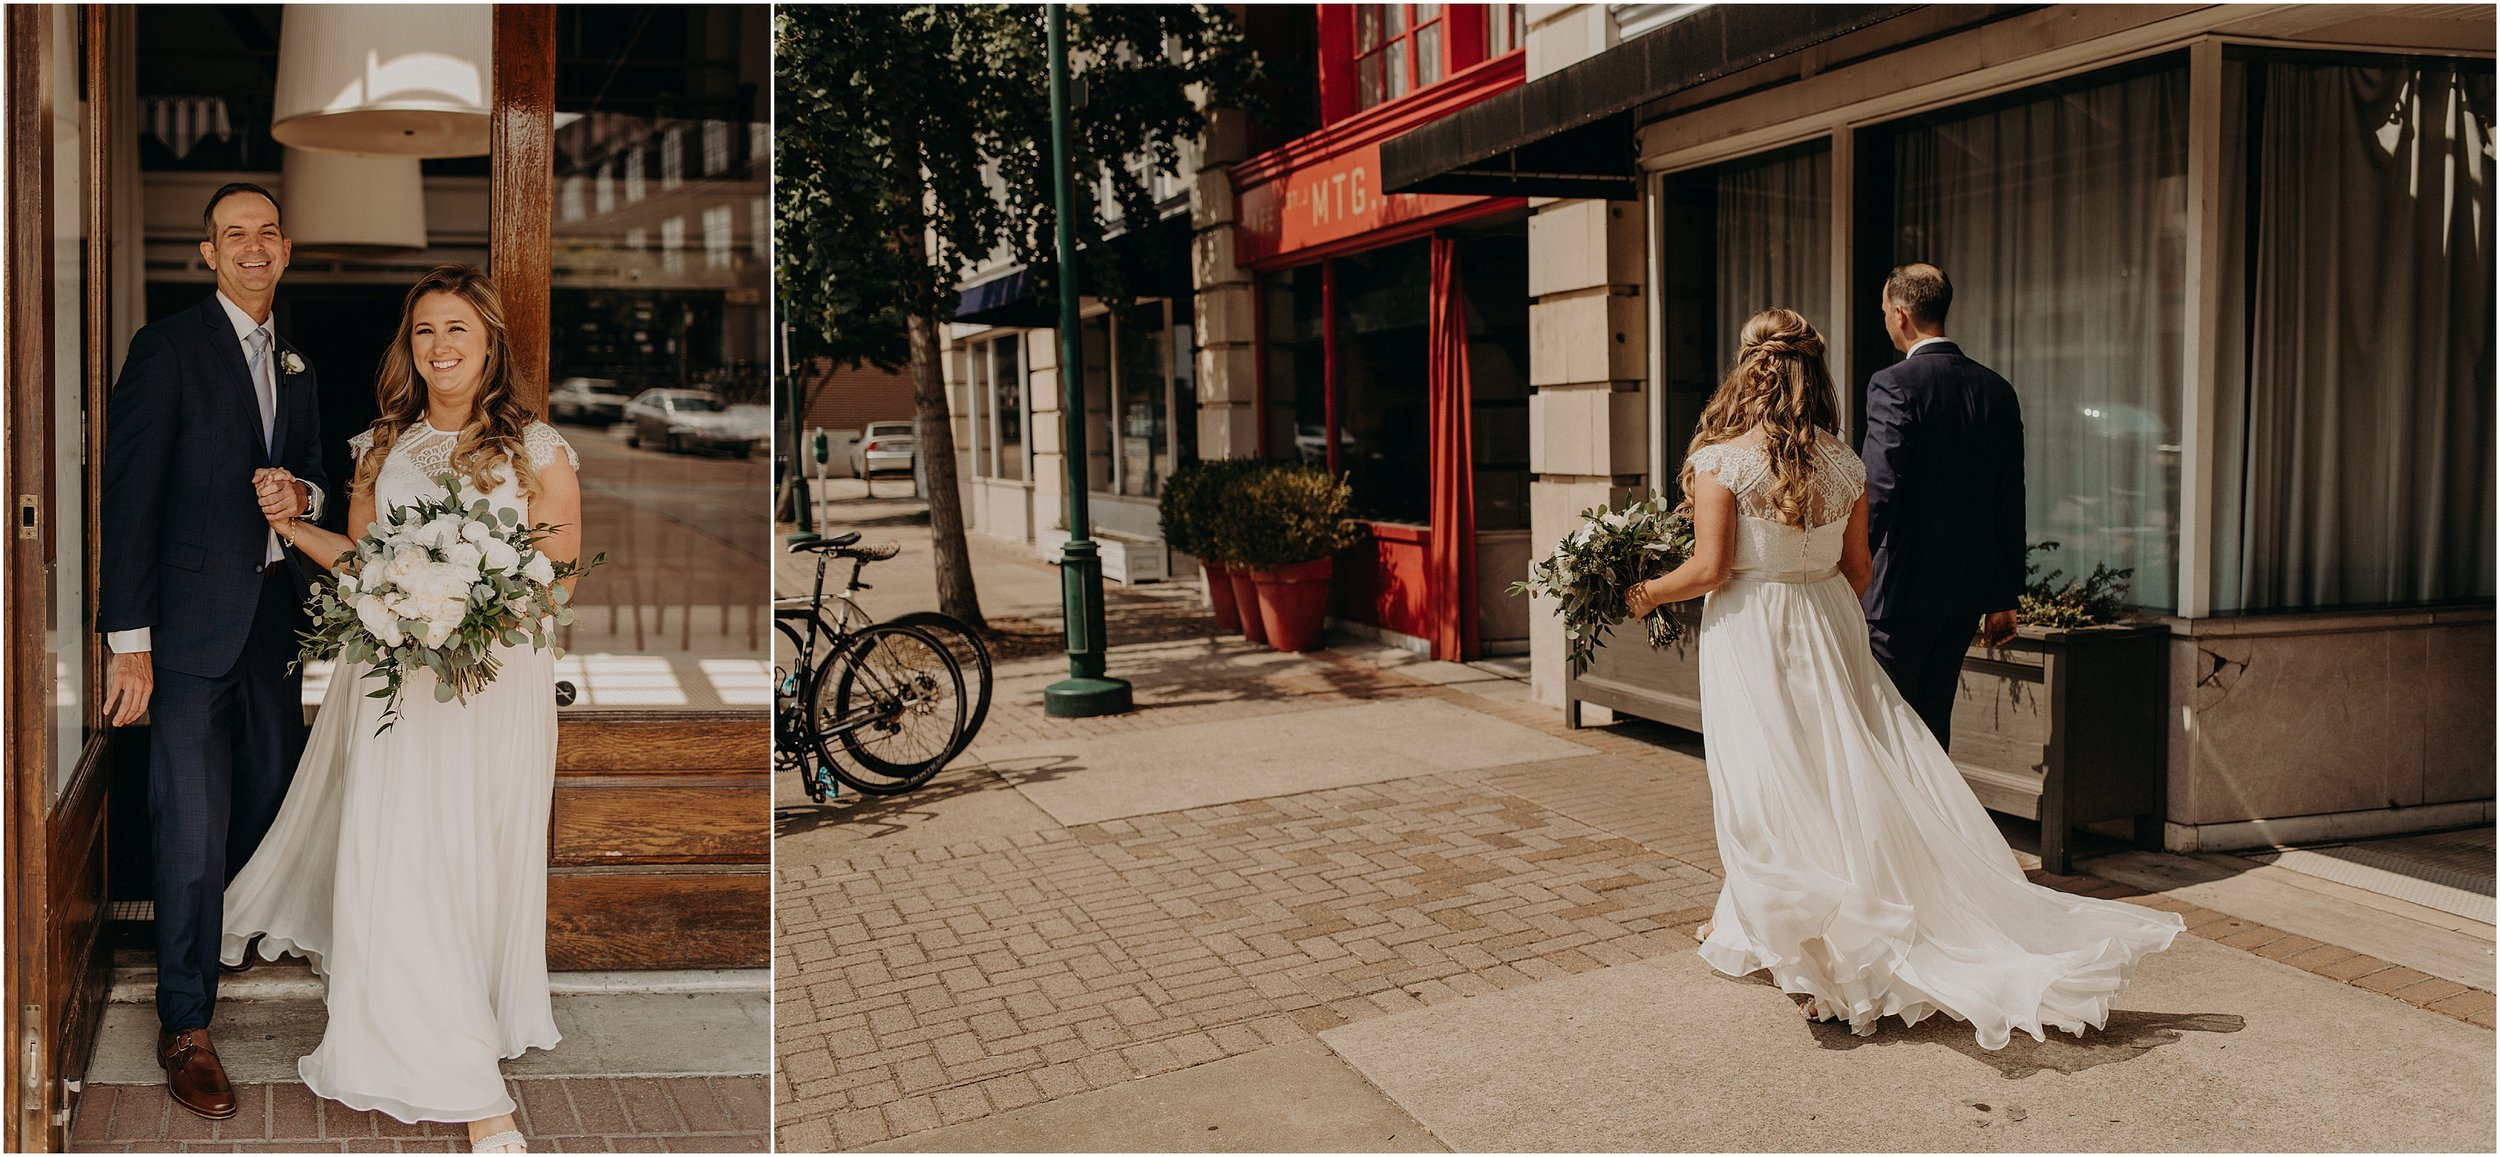 Bride and groom walk down the city sidewalk while her wedding gown blows in the breeze